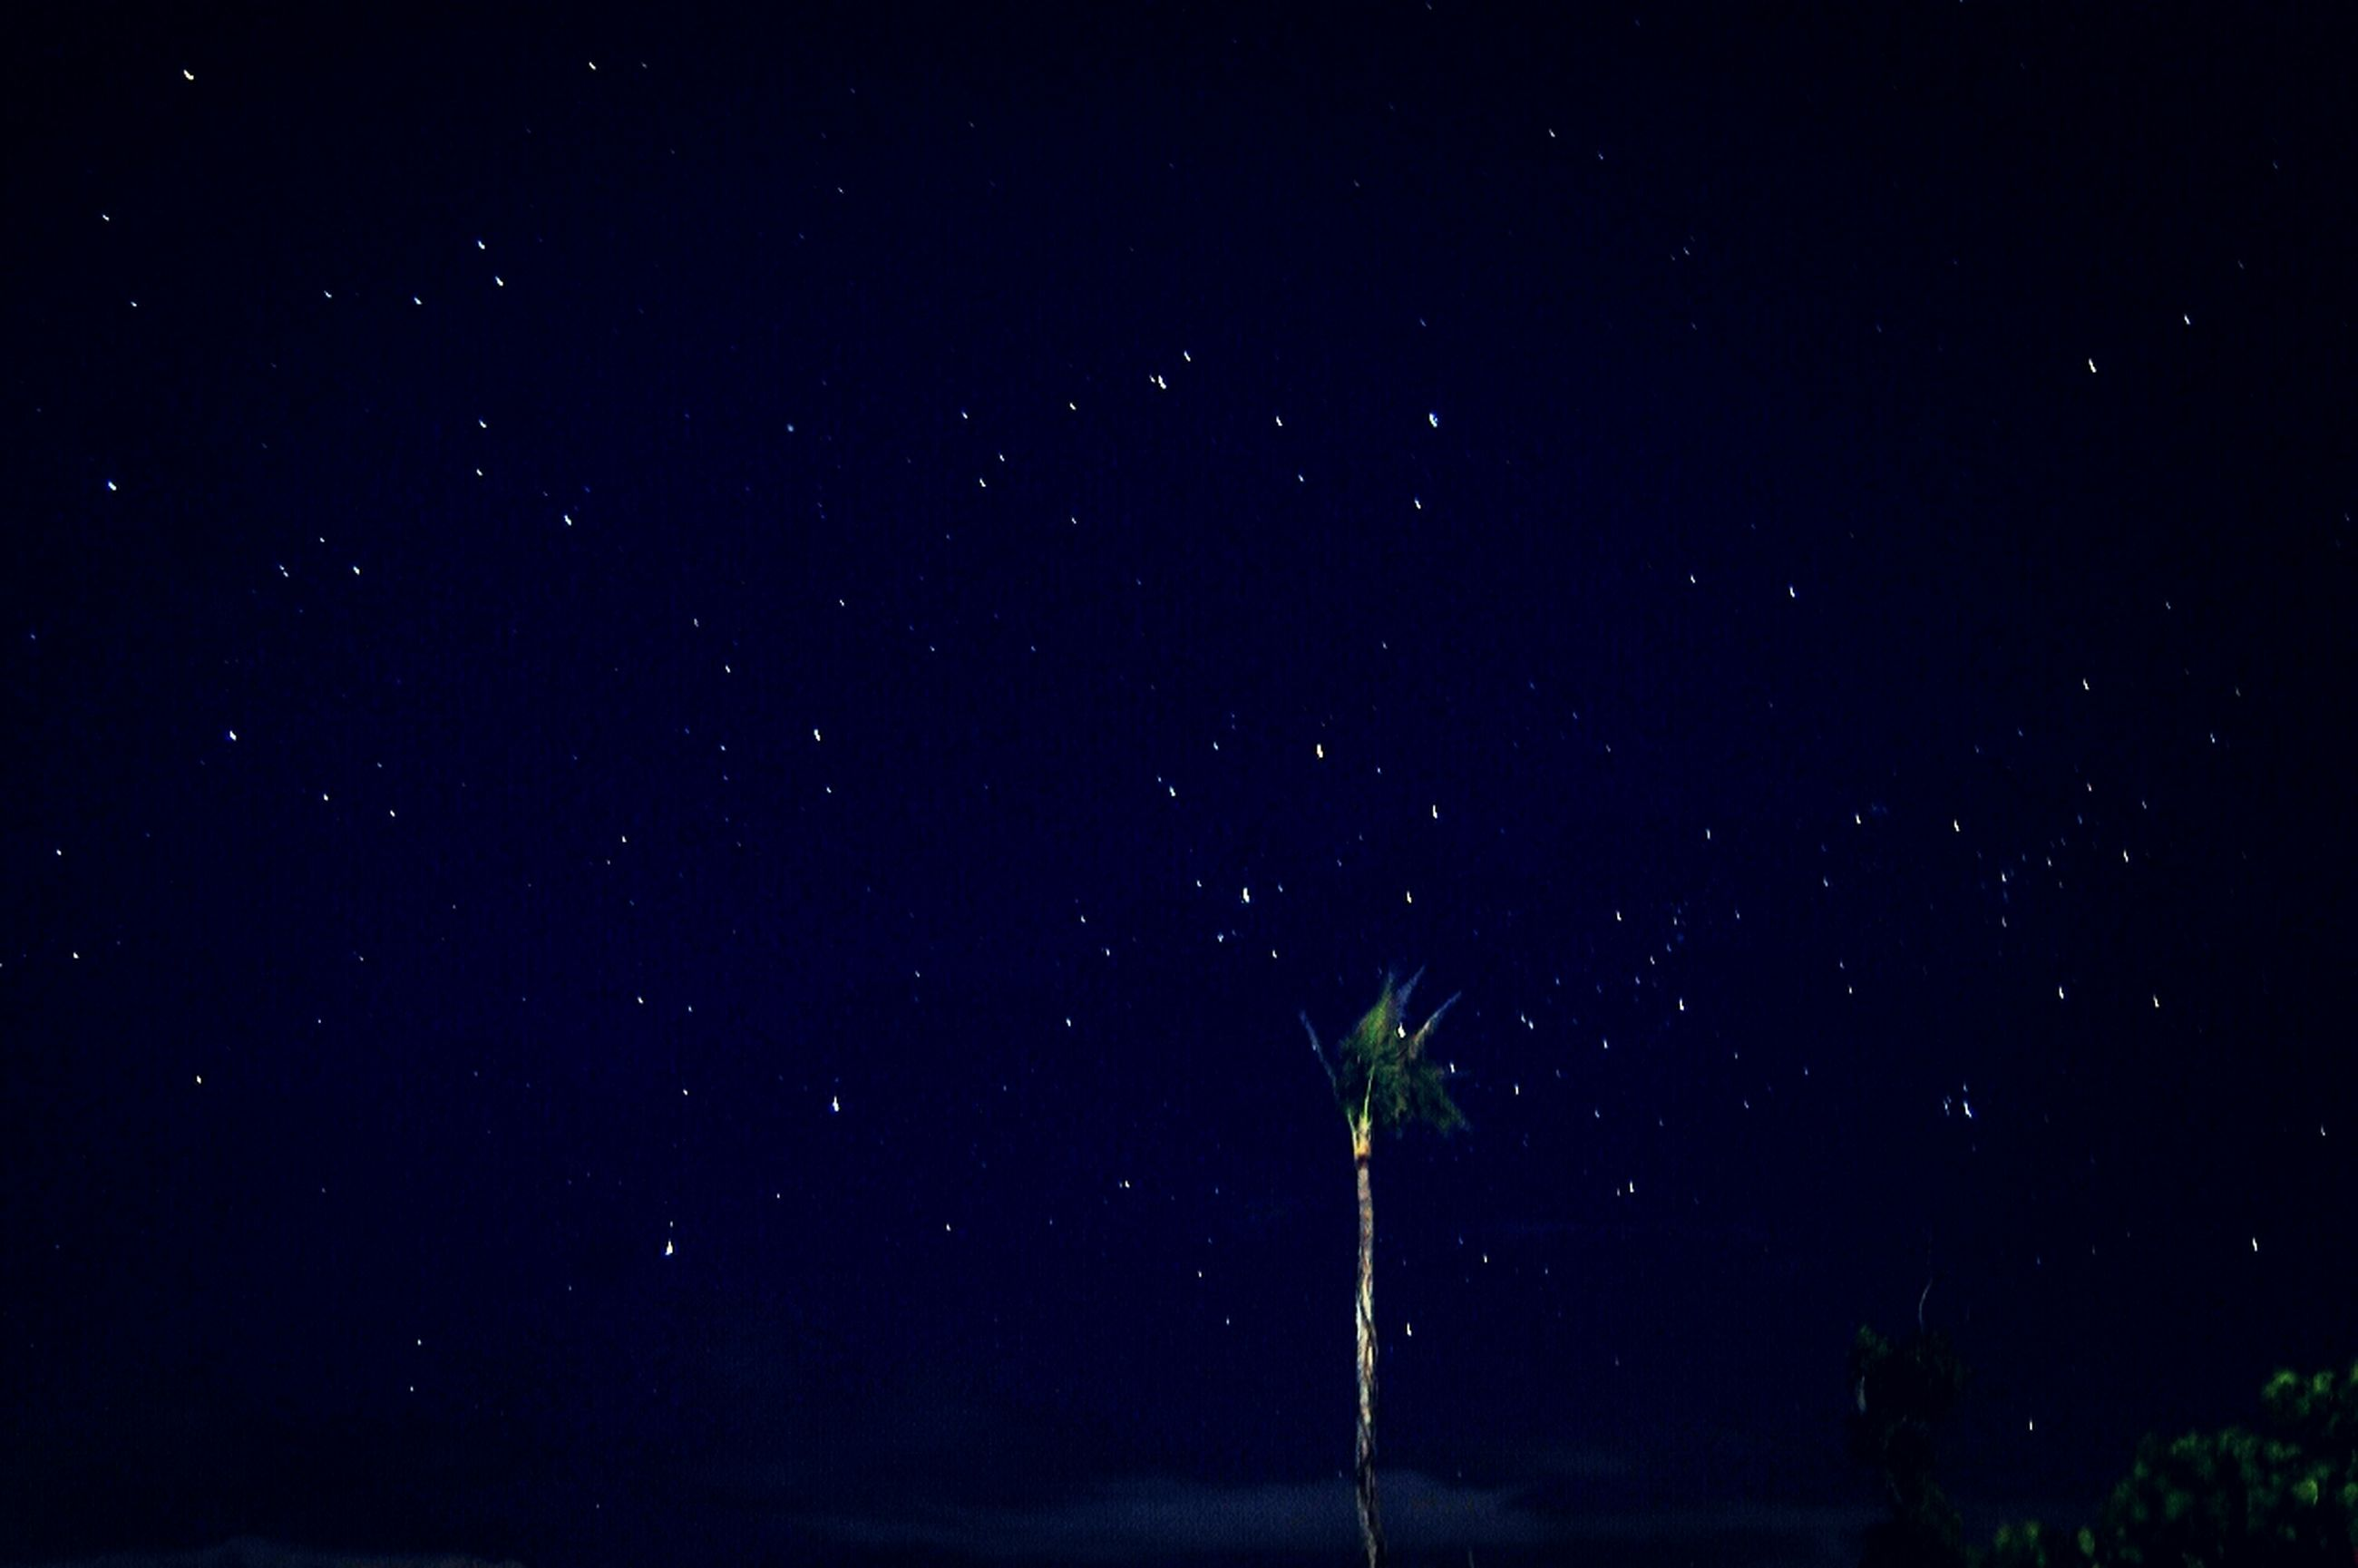 night, star - space, astronomy, low angle view, star field, beauty in nature, tranquility, tranquil scene, scenics, nature, sky, star, galaxy, space, tree, infinity, dark, idyllic, growth, silhouette